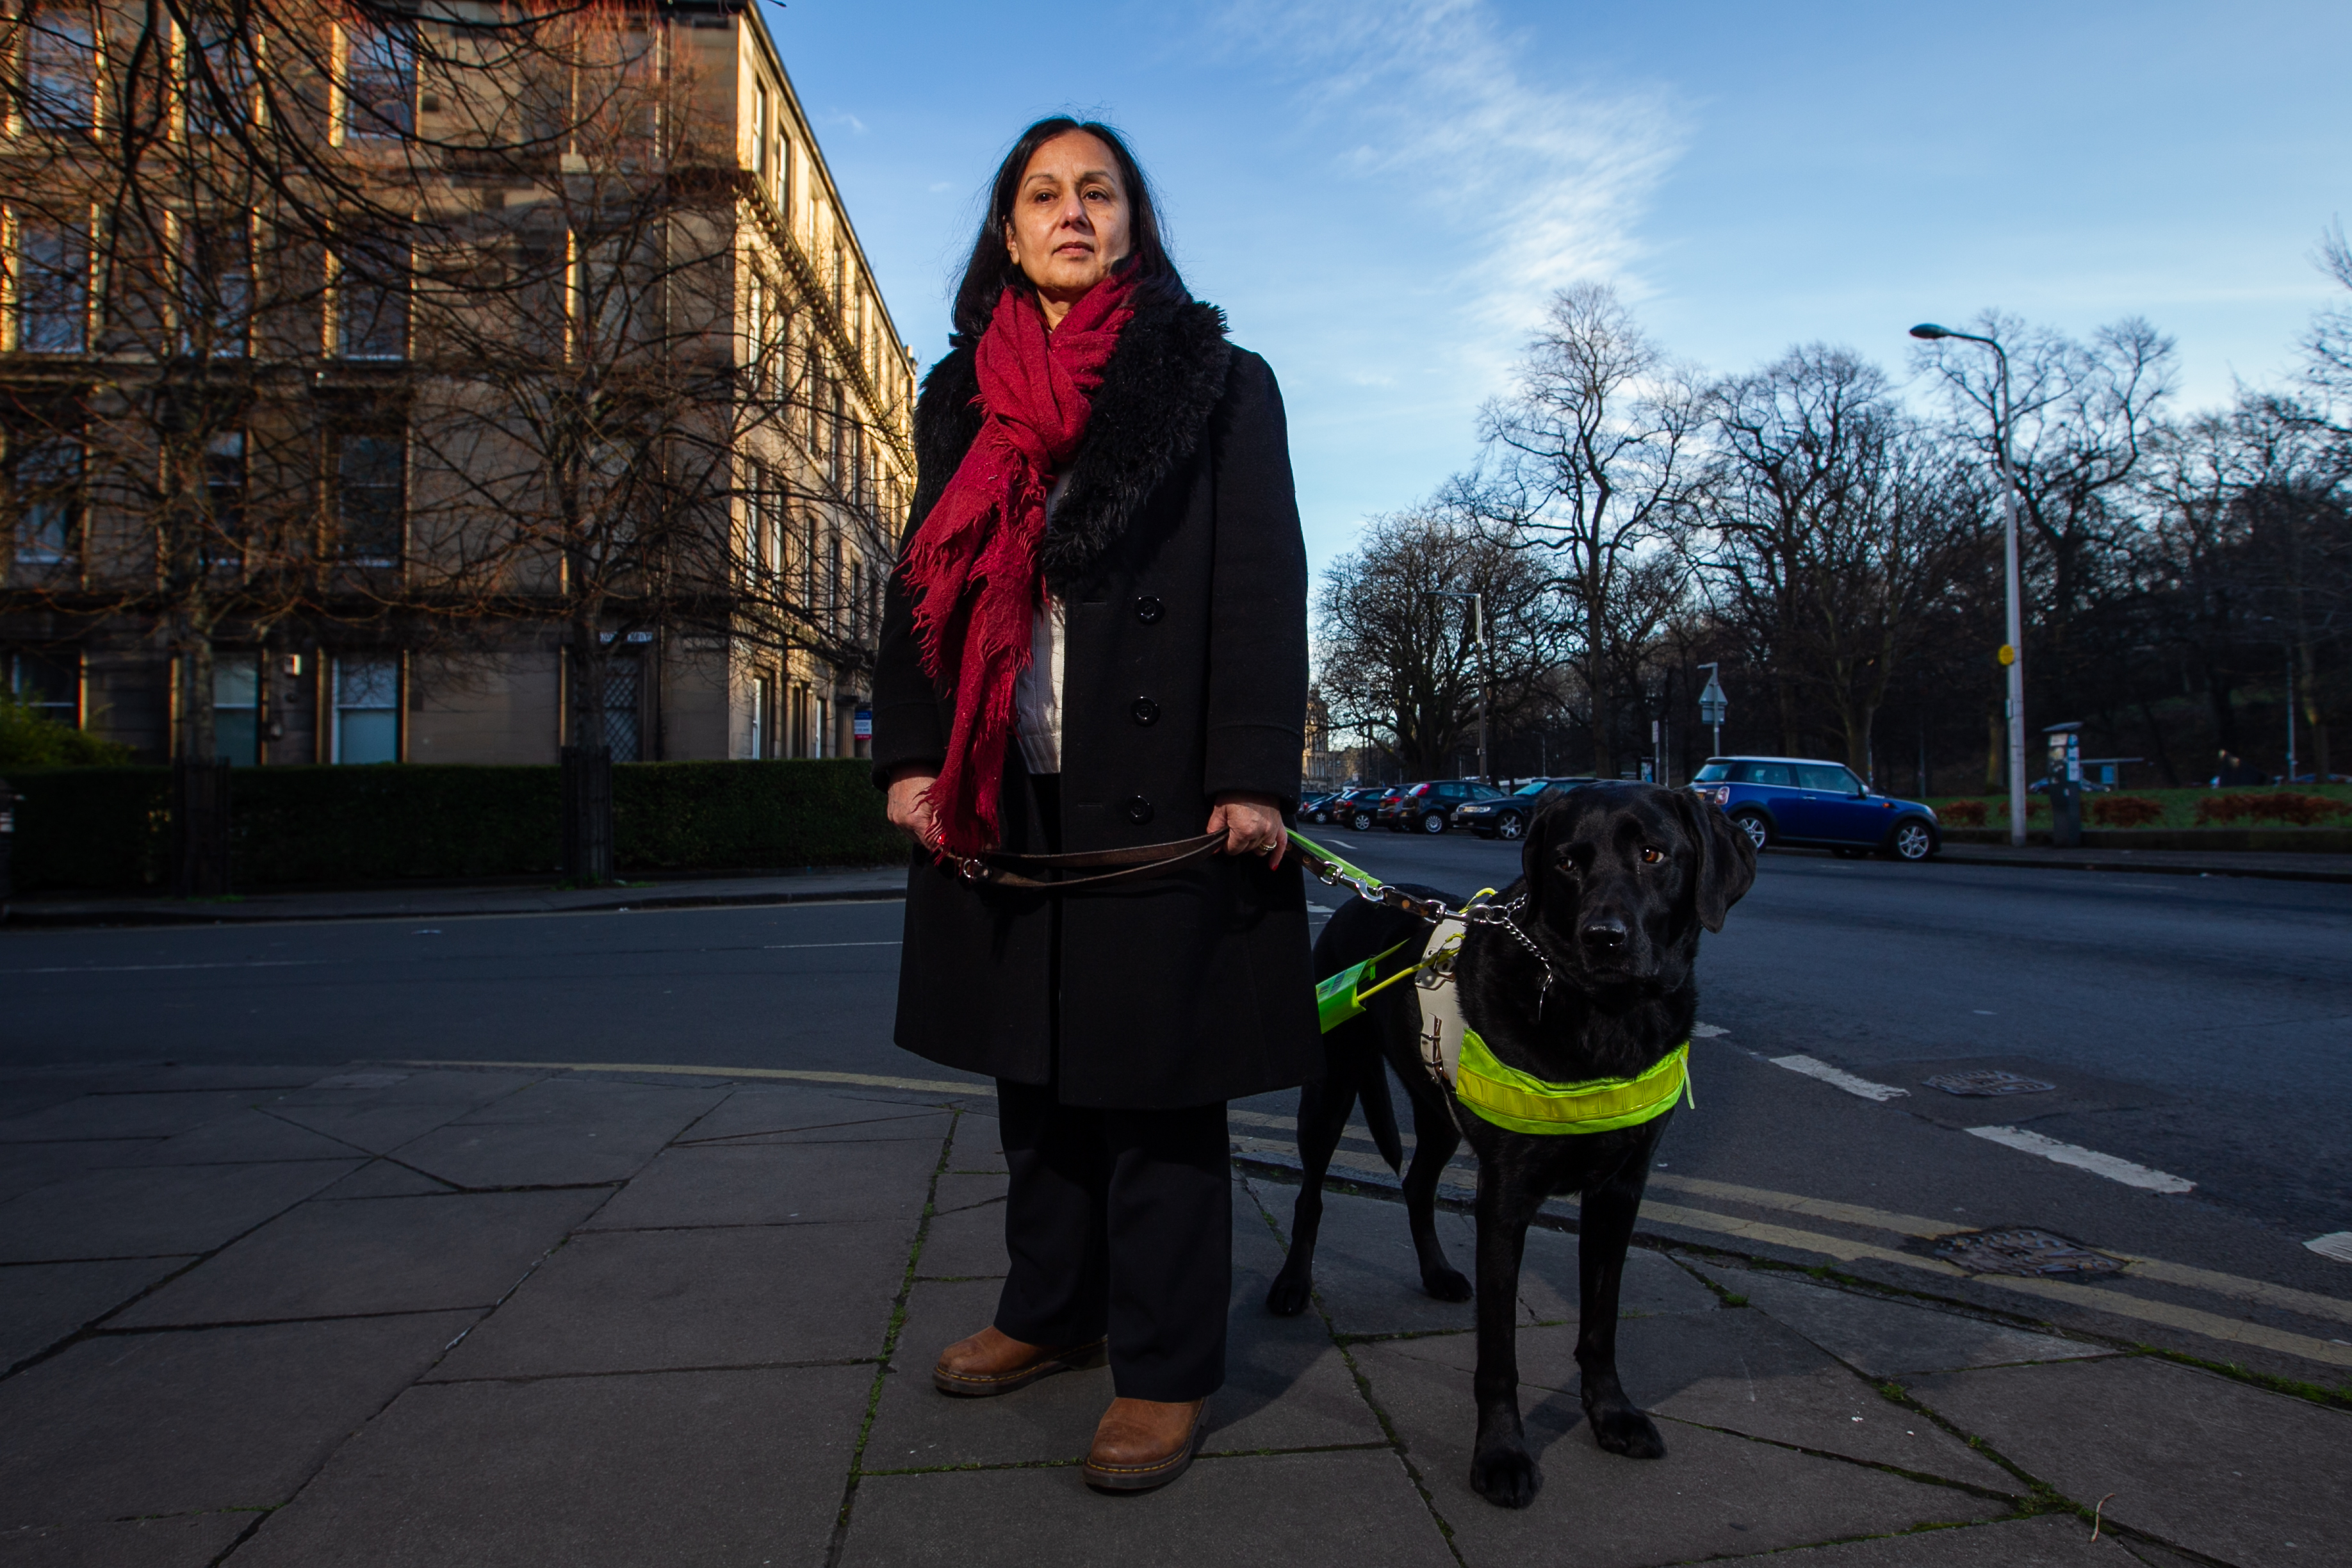 Jamilia Shaikh, and her guide dog Bubbles (Andrew Cawley)